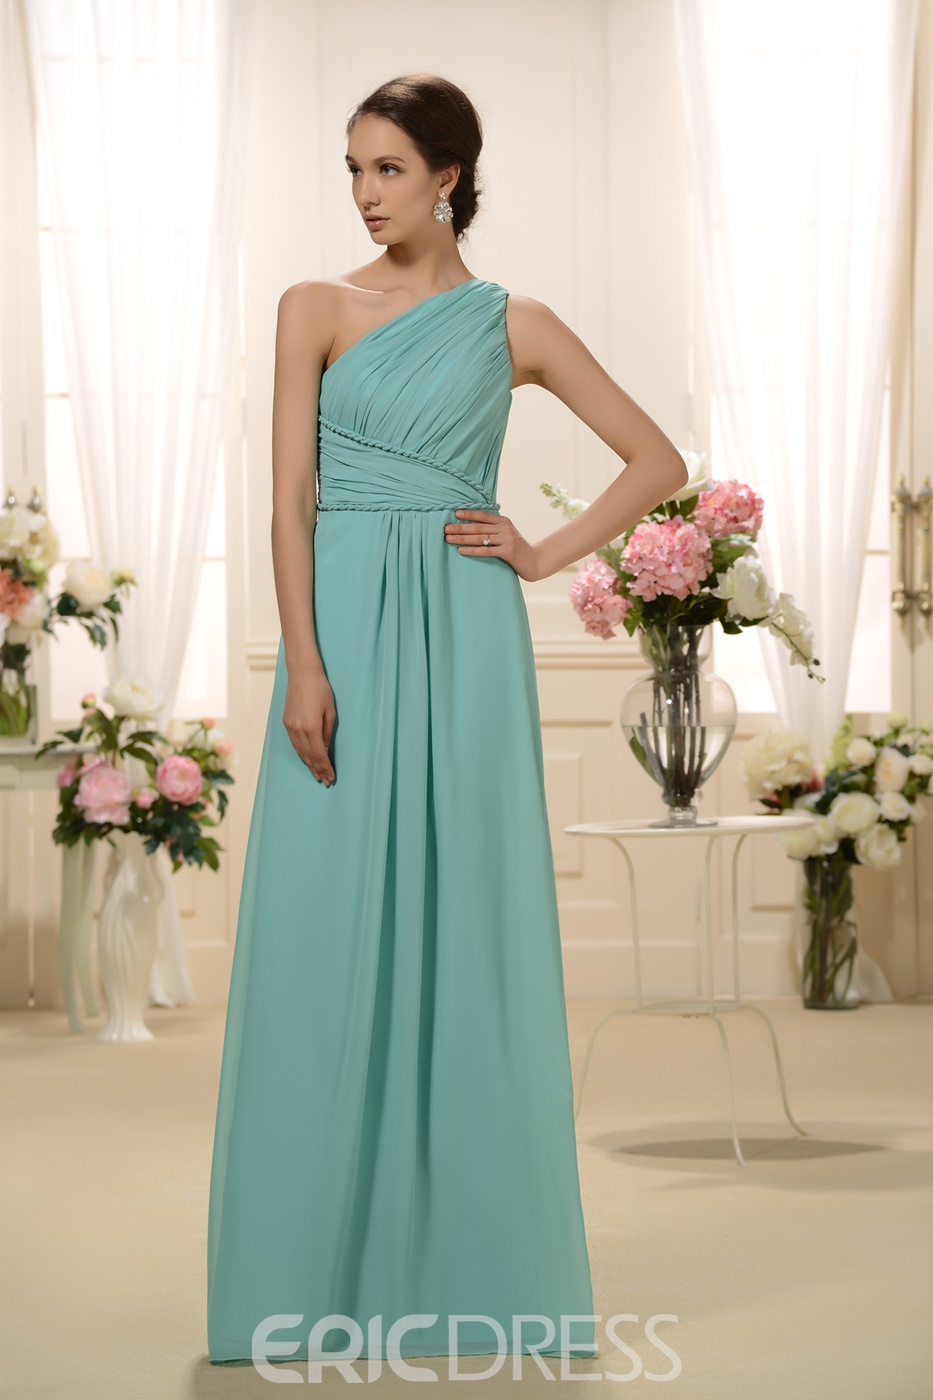 Incredible Pleatss A-Line One-Shoulder Floor-Length Bridesmaid Dress